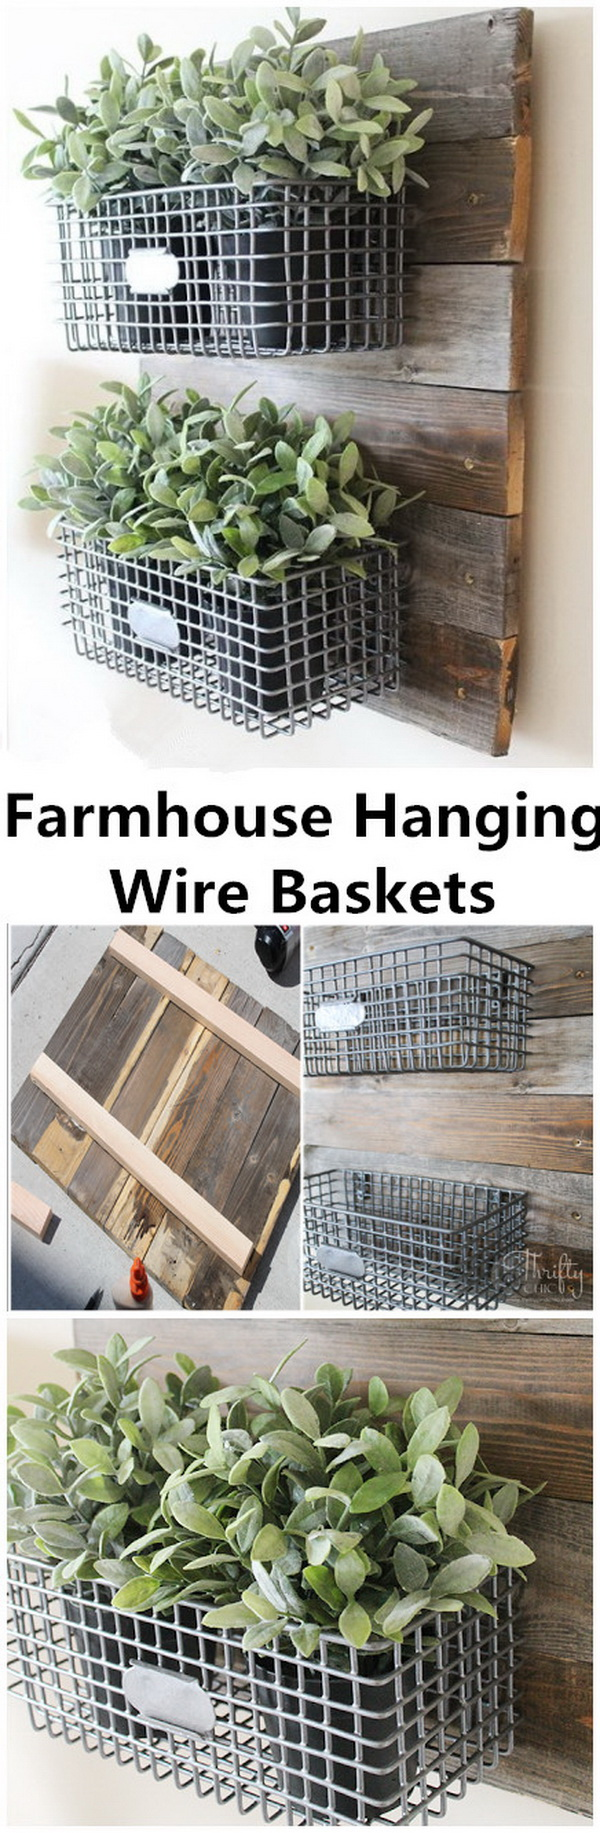 DIY Wood and Wire Baskets Wall Organizer.